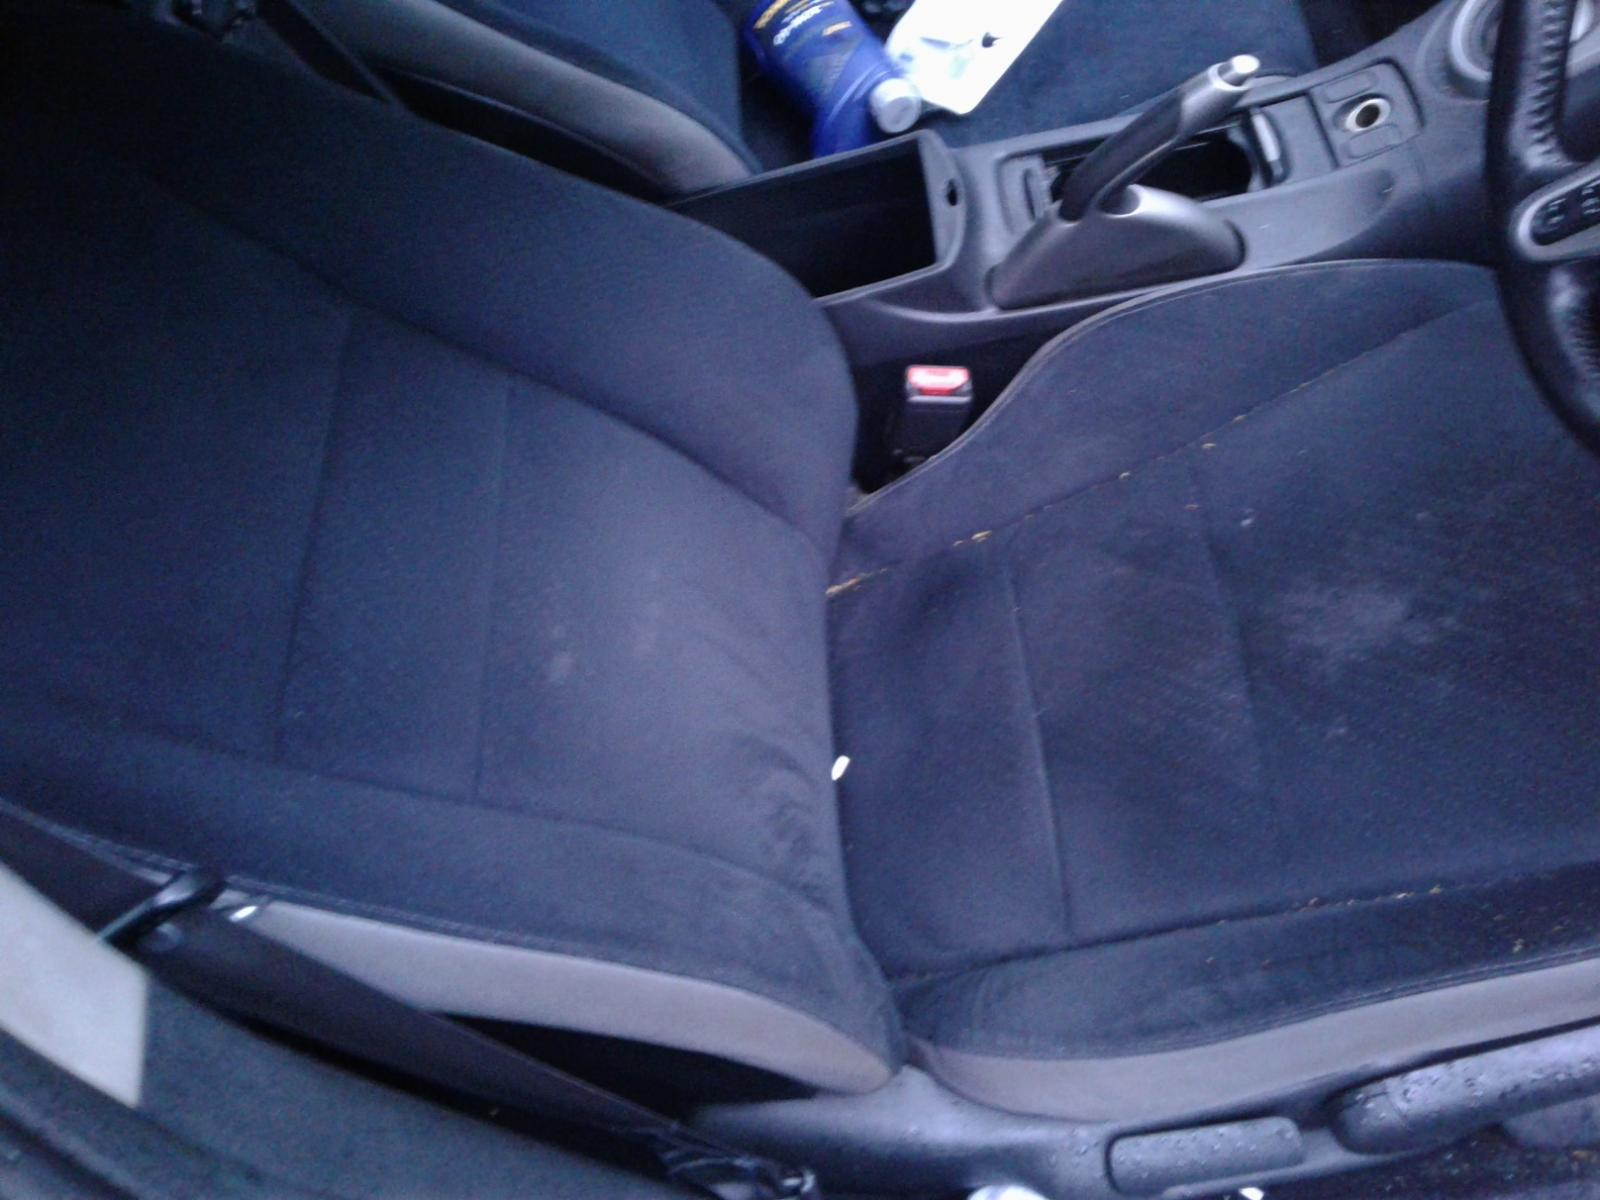 Image for a HONDA CIVIC 2007 5 Door Hatchback